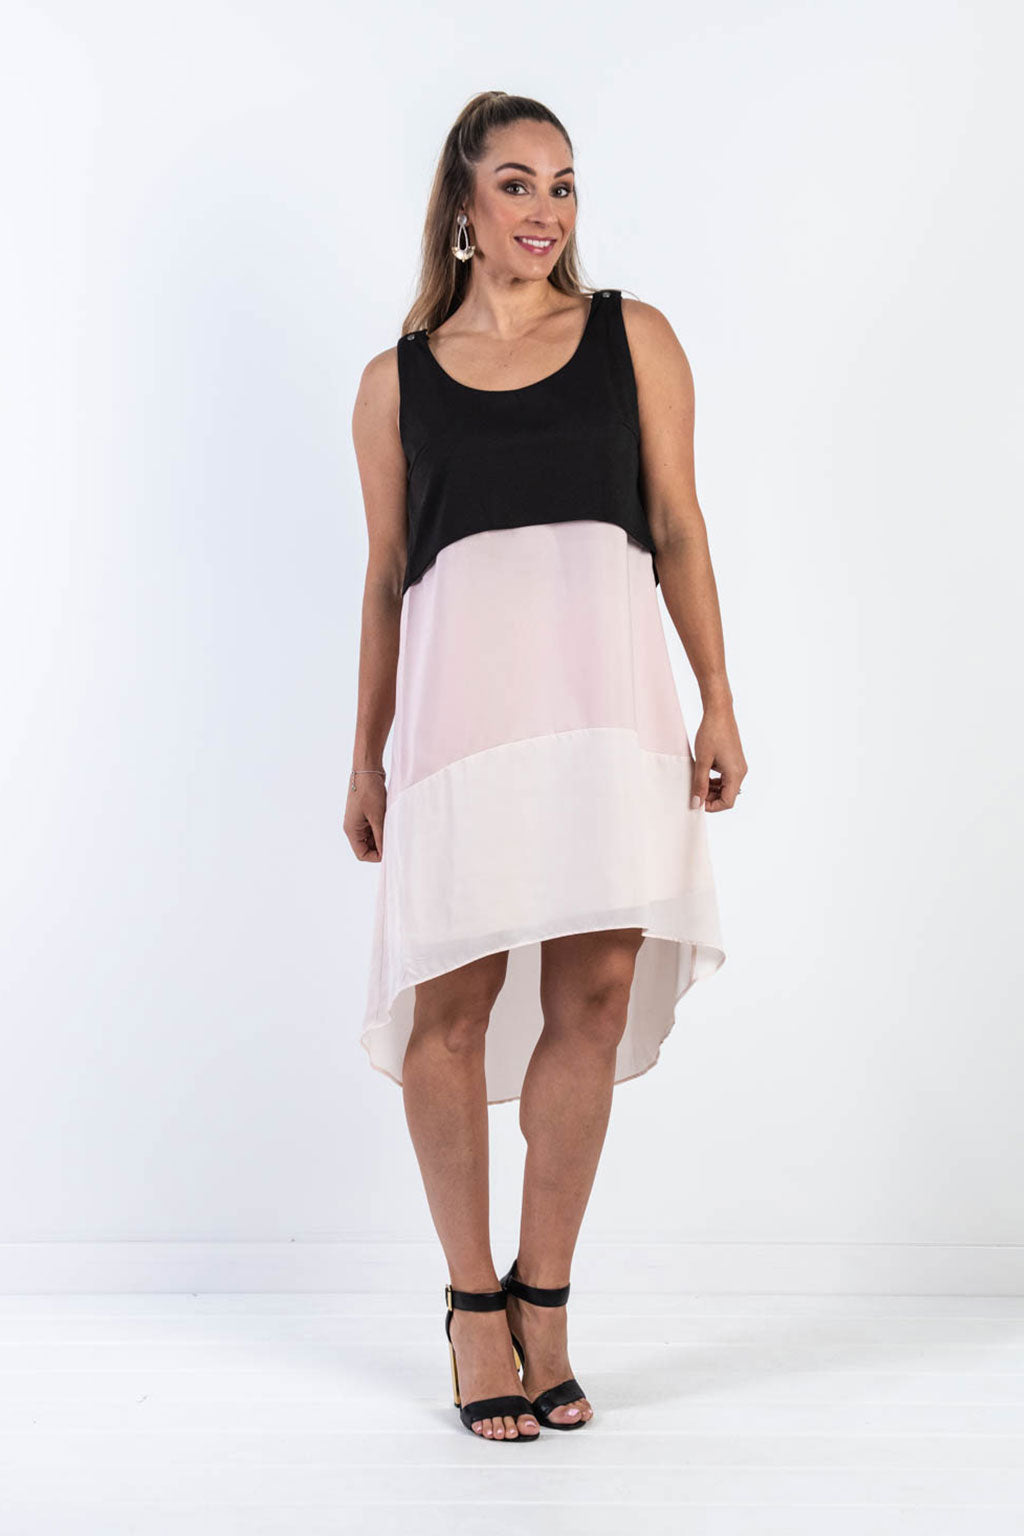 Super Sundae Dress - Blush *ONLY SIZE 14* (FINAL SALE)